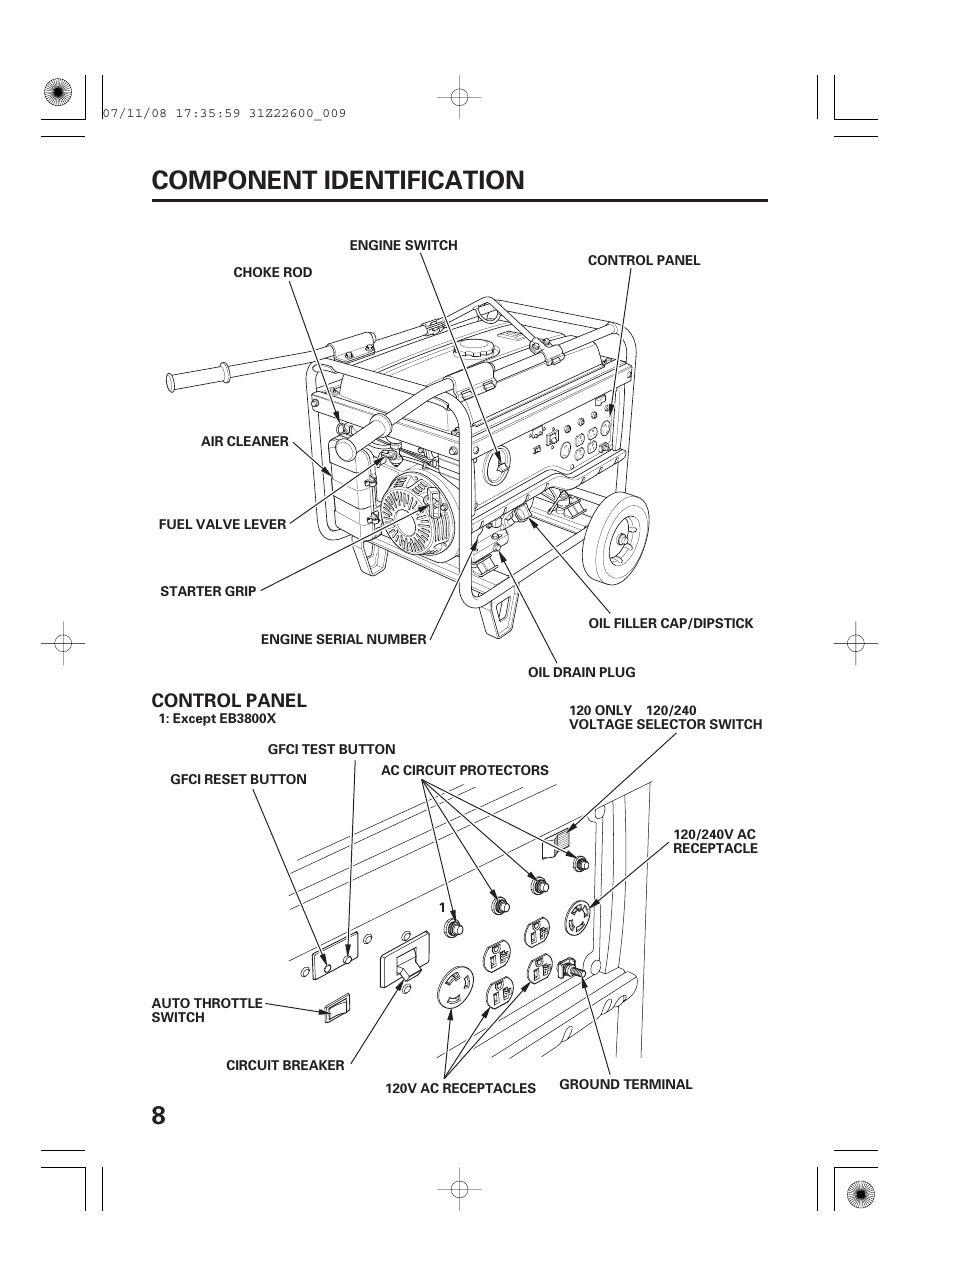 Component identification, 8component identification